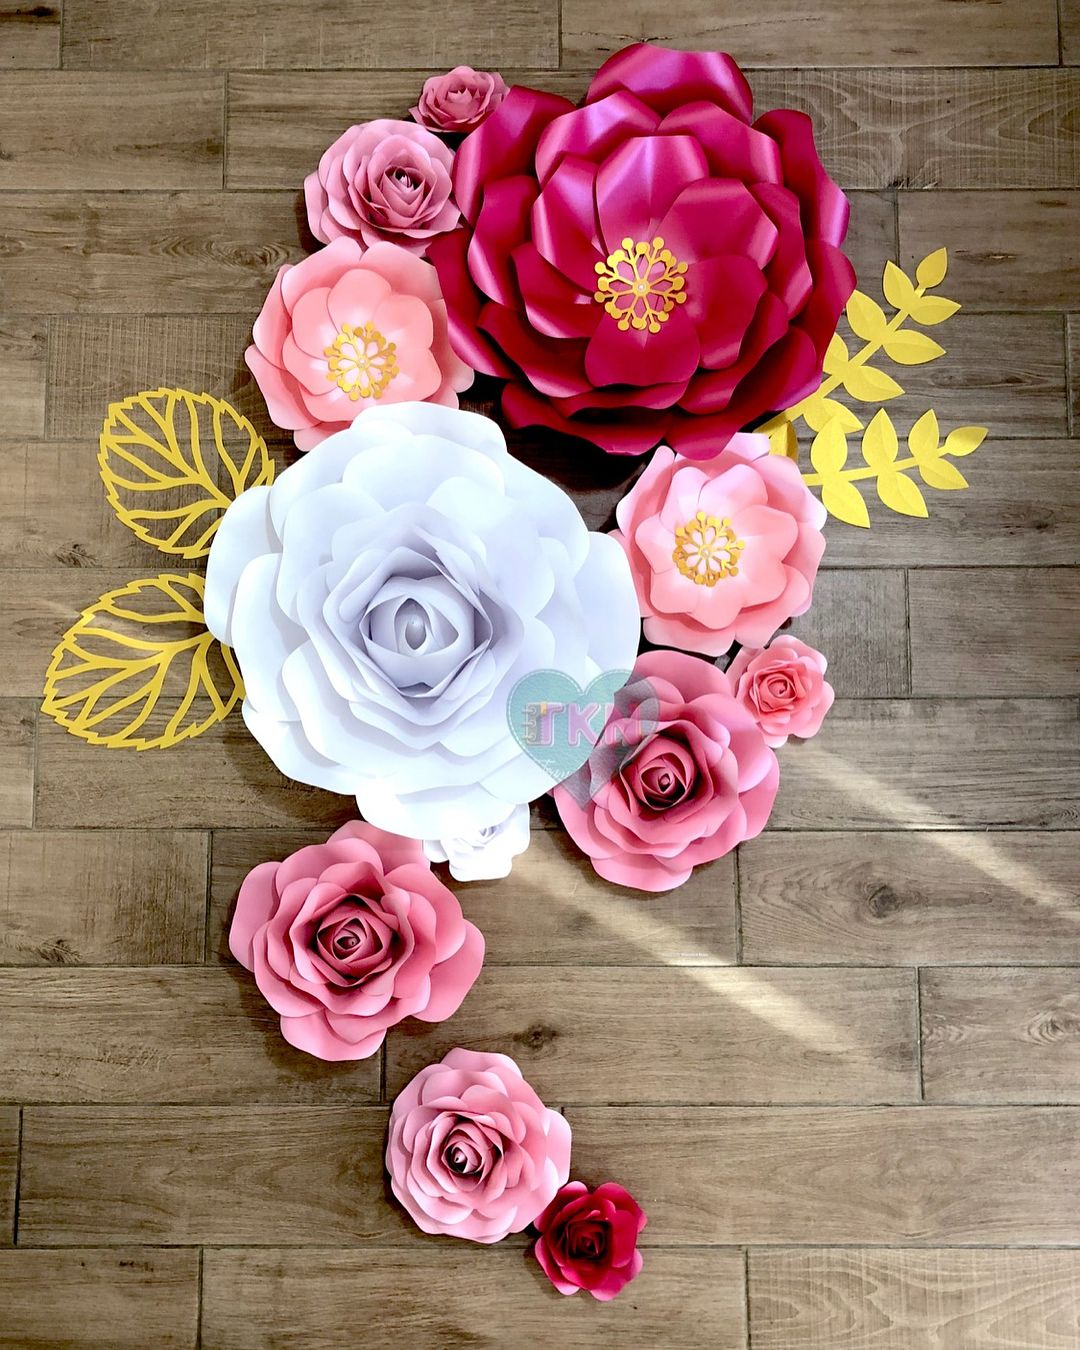 Our Customized Paperflowers In Diffe Shades Of Pink Teamkunatcrafts Paperflowerwall Paperroses Paperrose